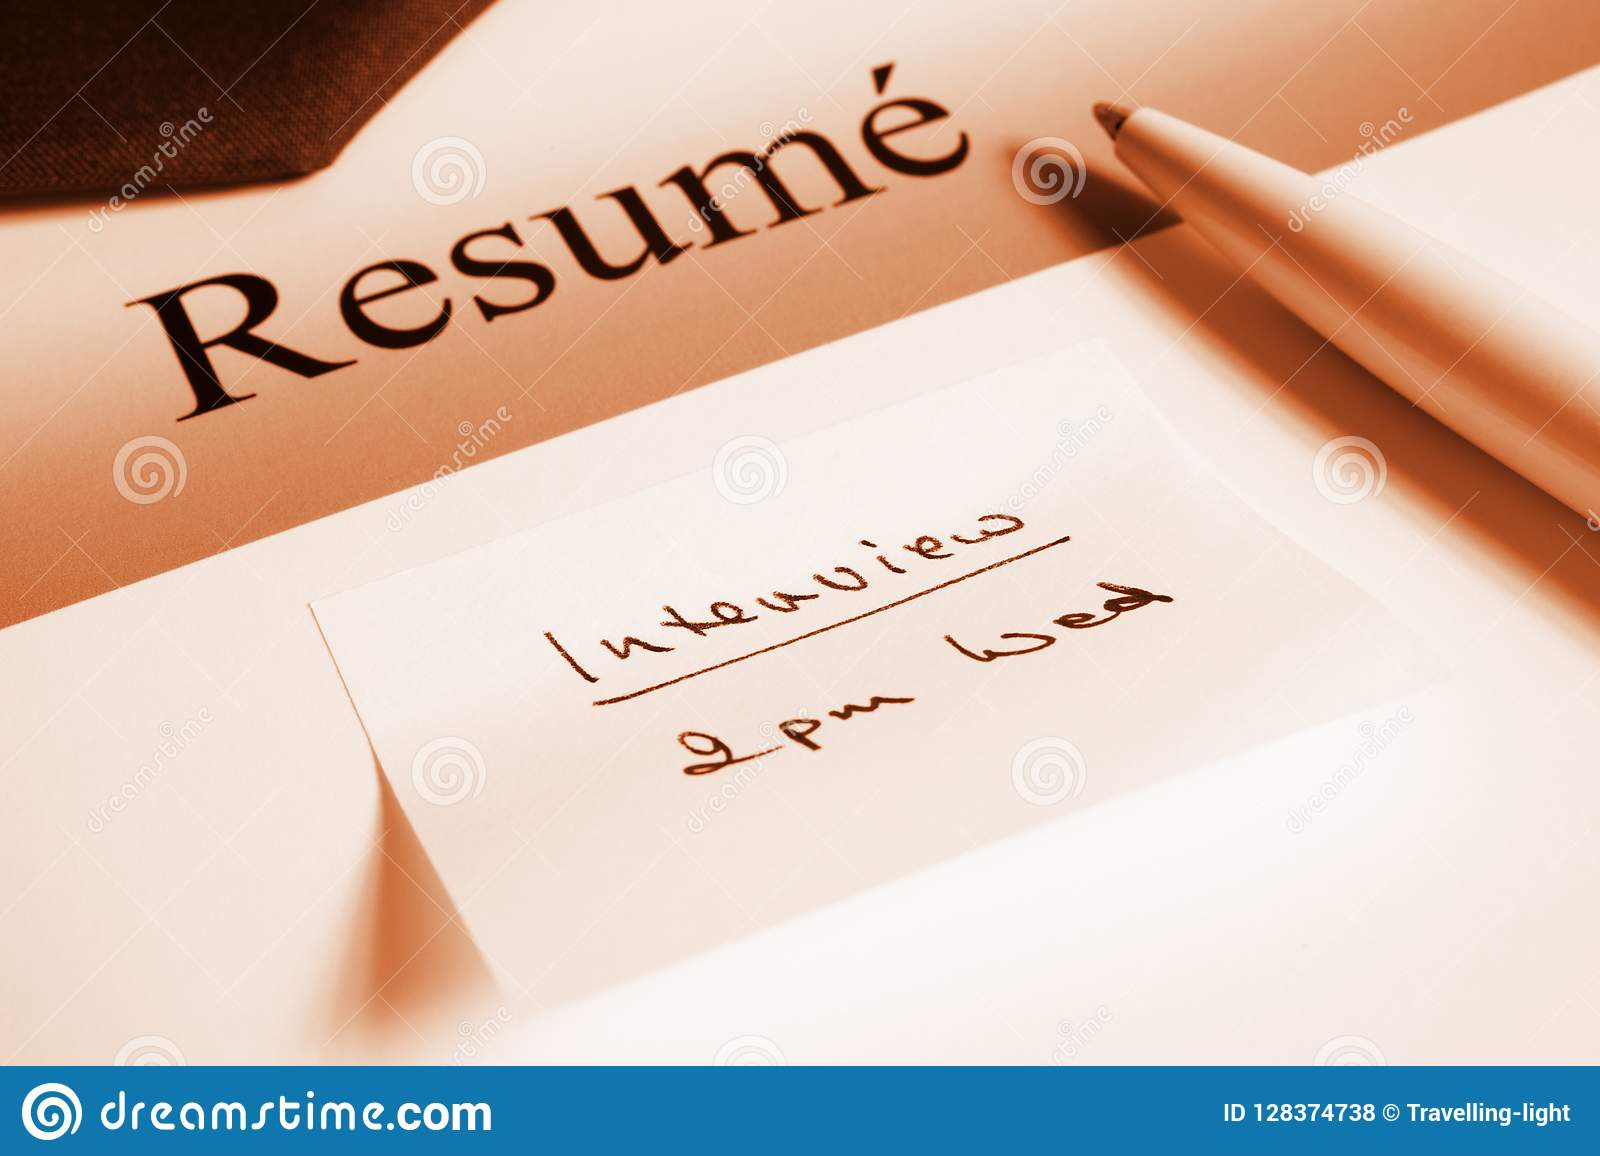 Resume And Job Interview Concept Stock Photo Image Of Sepia